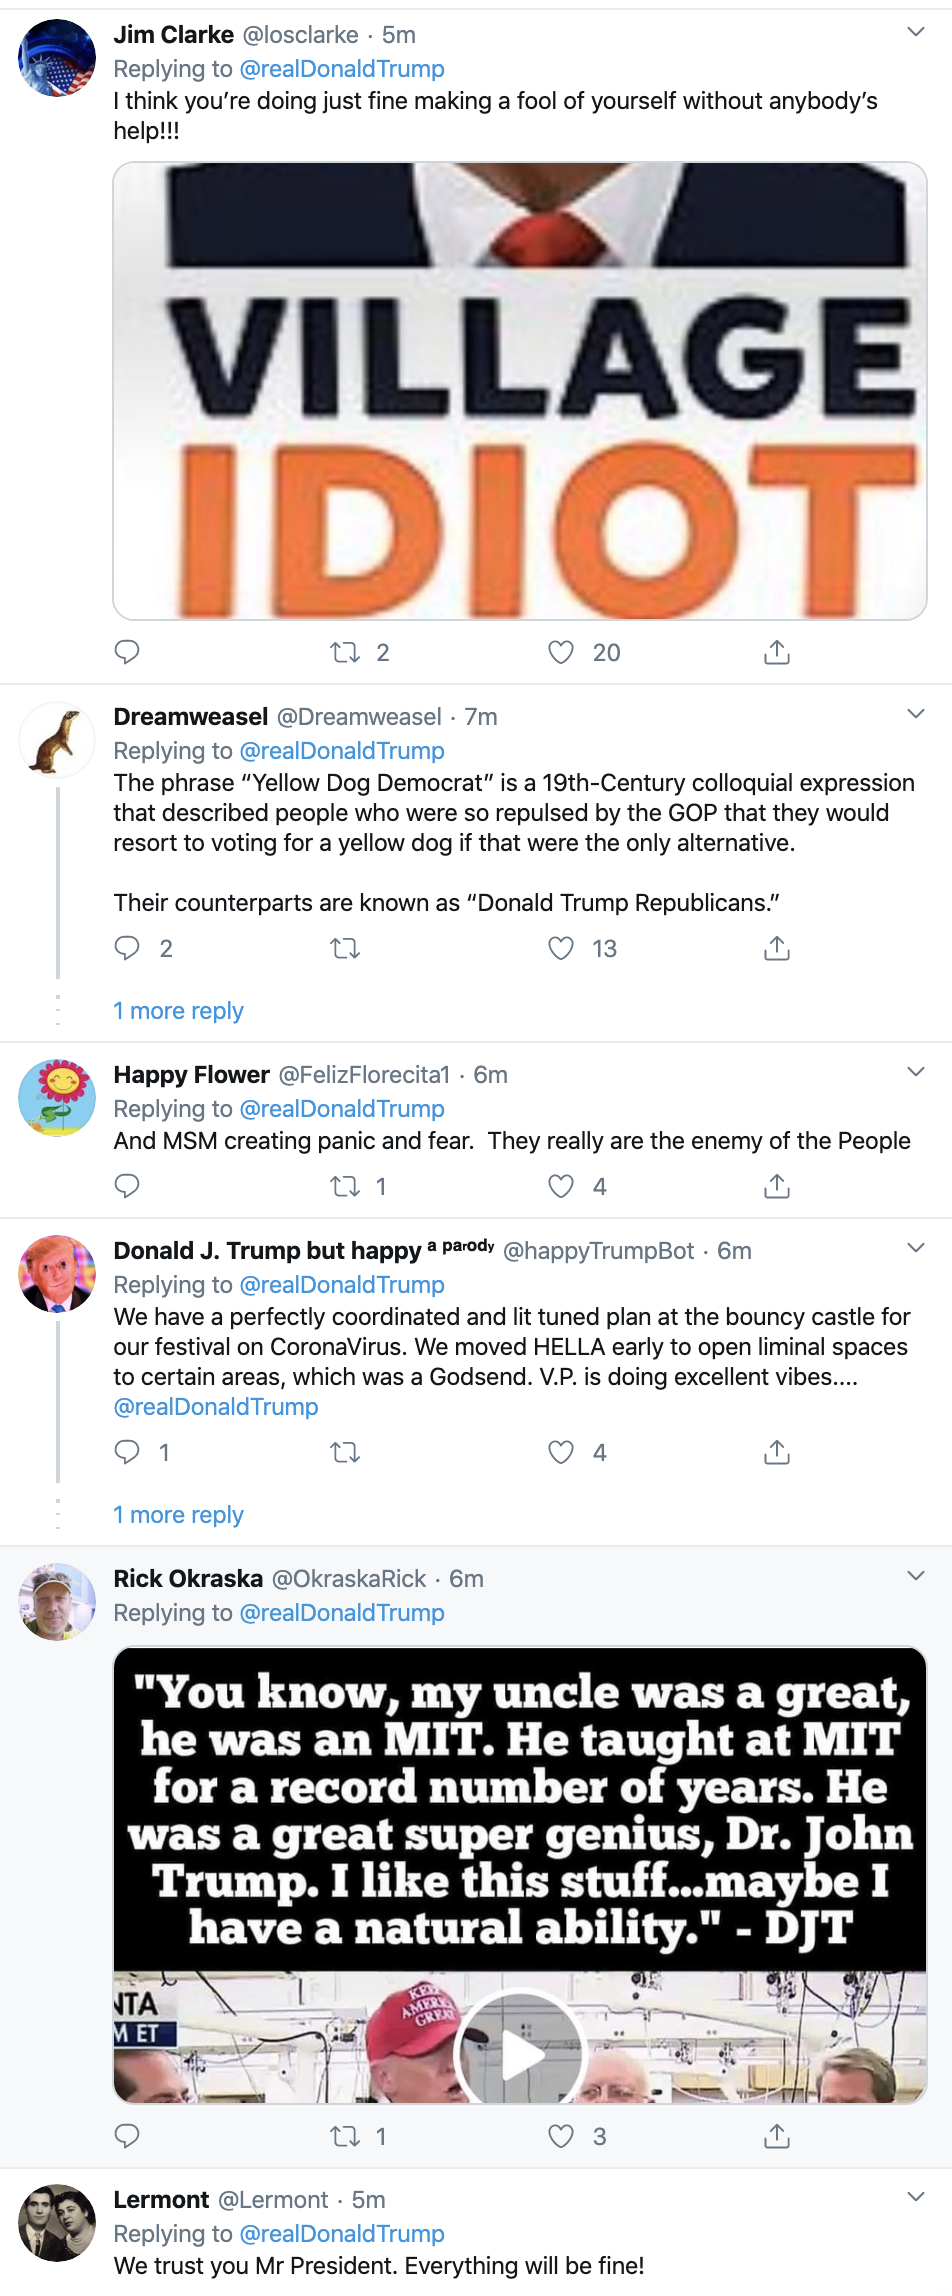 Screen-Shot-2020-03-08-at-7.53.31-AM Trump Says Media Lying About Coronavirus On Twitter Featured Healthcare National Security Politics Top Stories